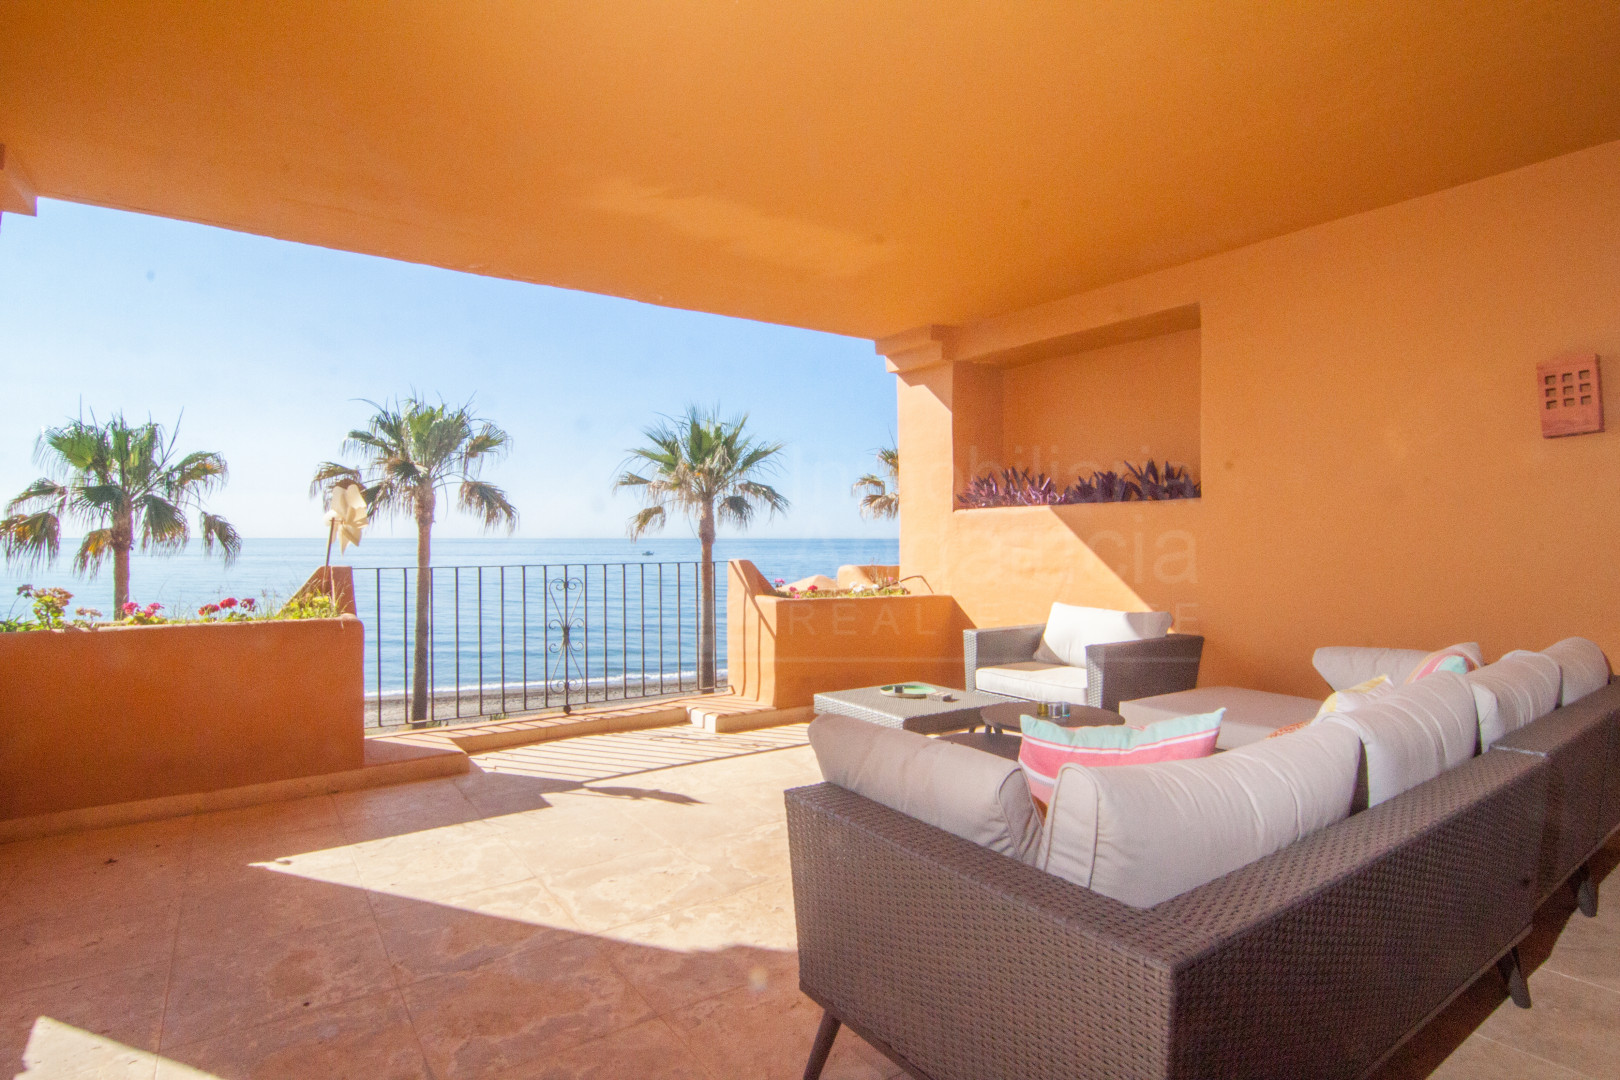 Quality 3 bedroom 1st floor apartment for sale in Los Granados del Mar, Estepona